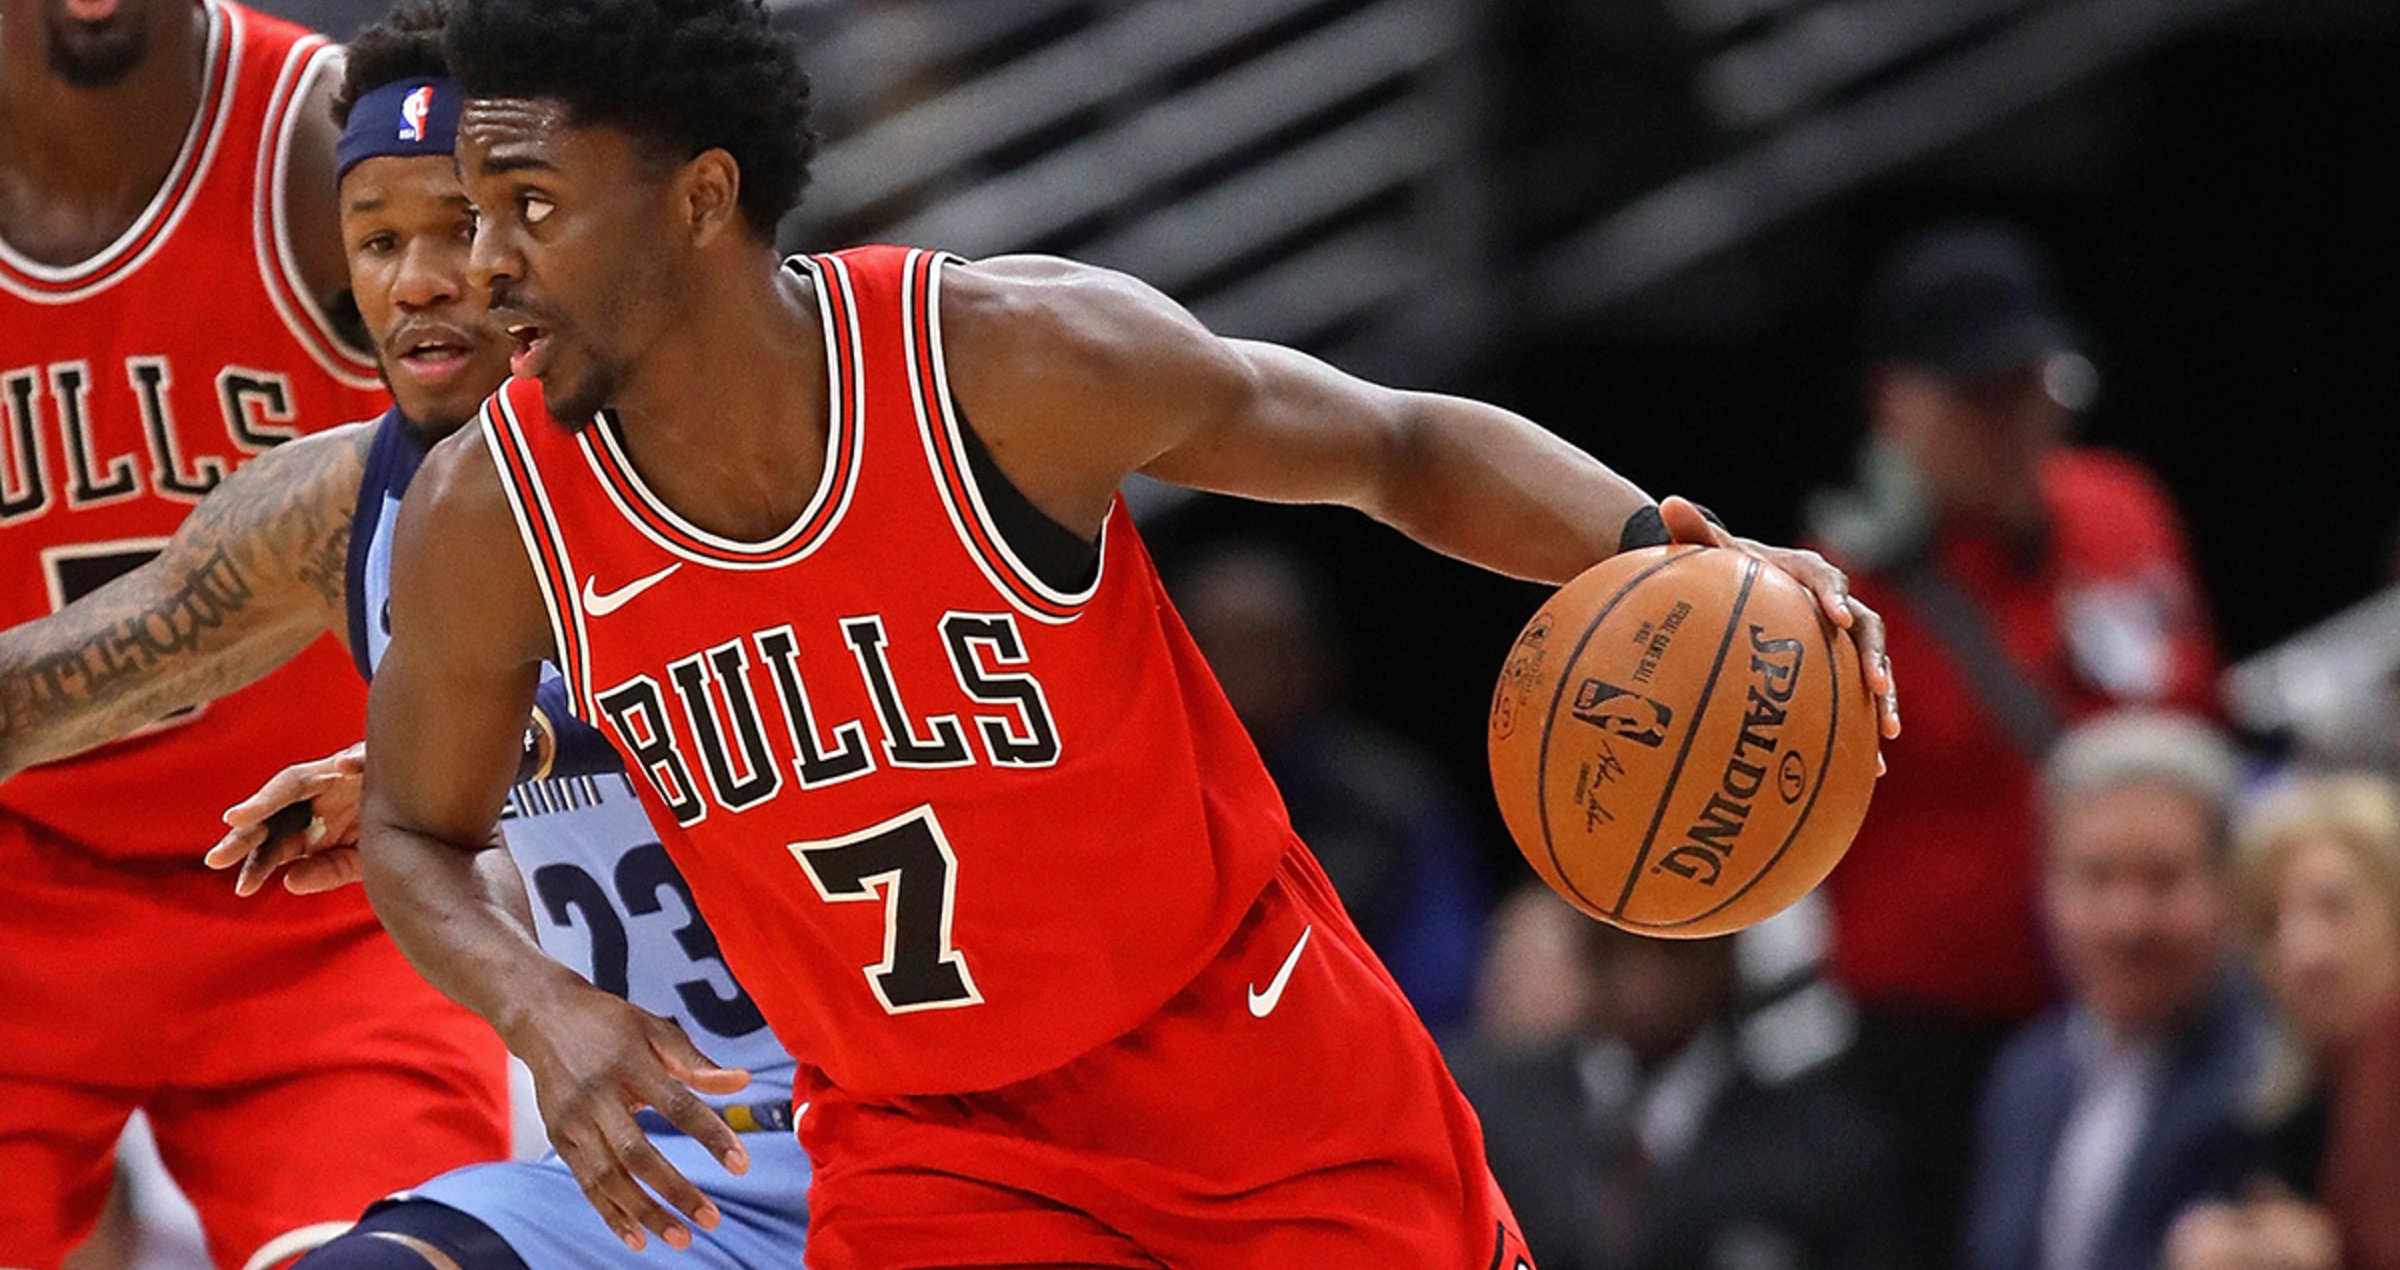 Justin Holiday shot a perfect 5-5 from the field on Wednesday night